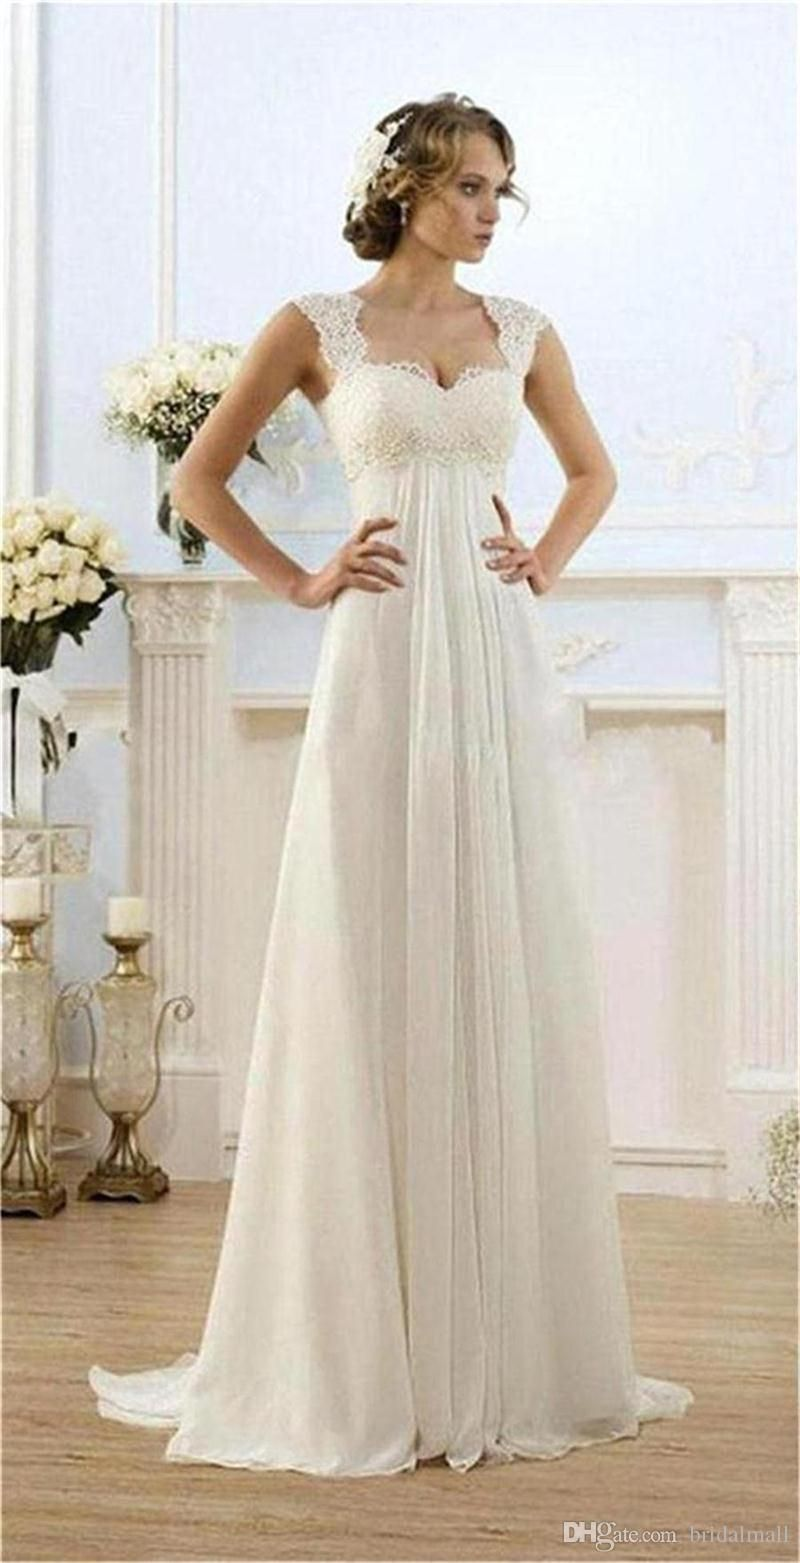 Lace and Chiffon Wedding Dress  Country Dresses for Weddings